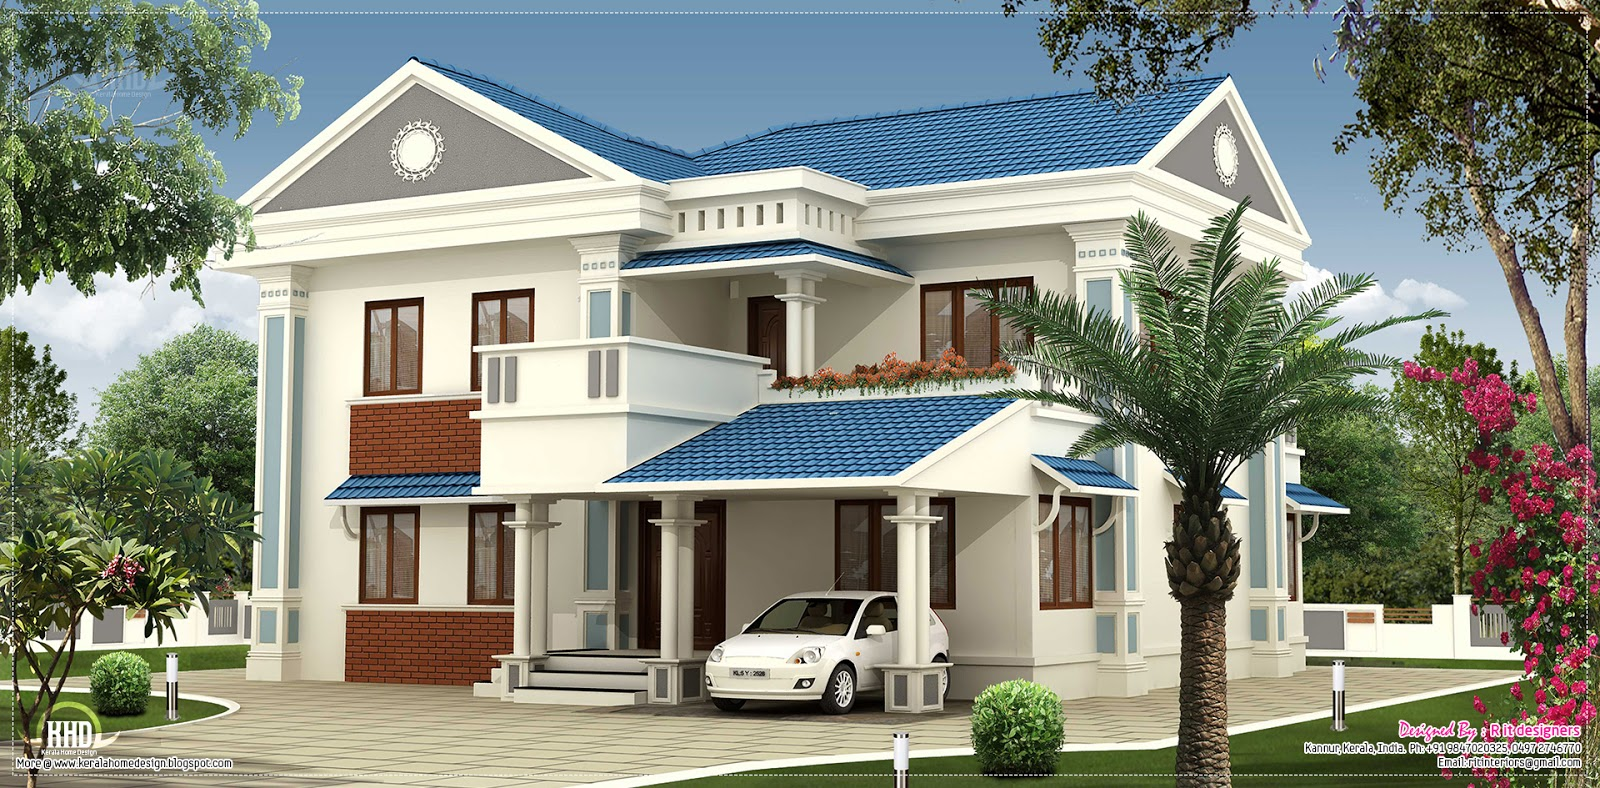 Nice home designs 19937 hd wallpapers background for House beautiful house plans